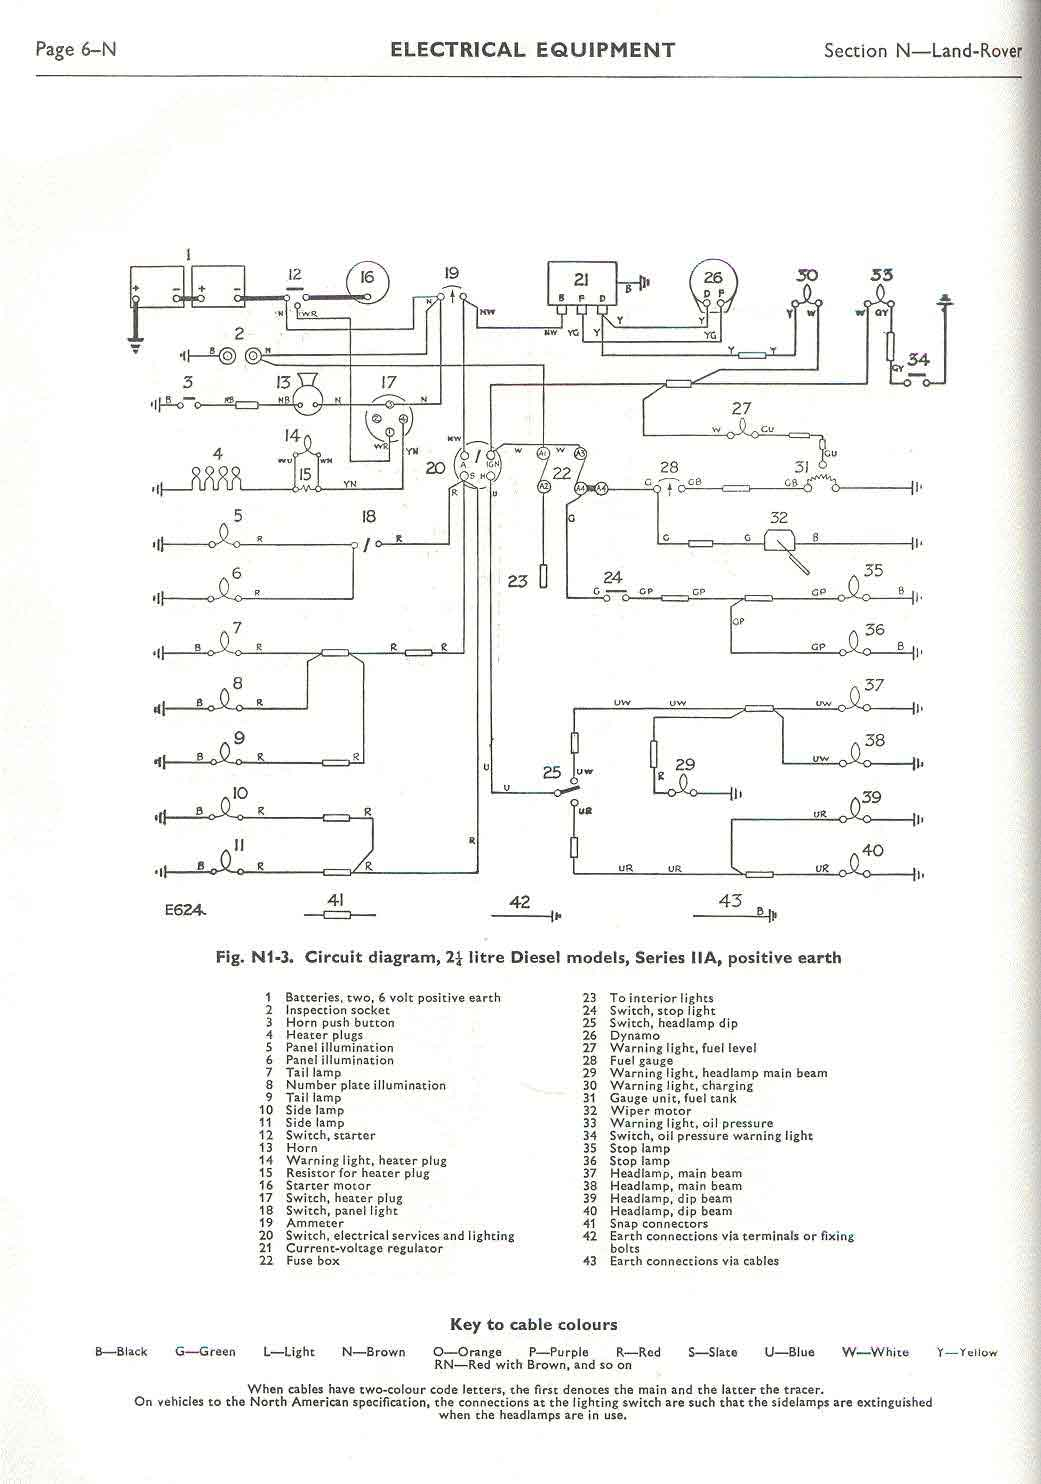 Wiring Schematics In Parallel Diagram Starting Know About Taurus Electric Fan Conversion Vettemodcom Land Rover Faq Repair Maintenance Series Electrical Rh Lrfaq Org